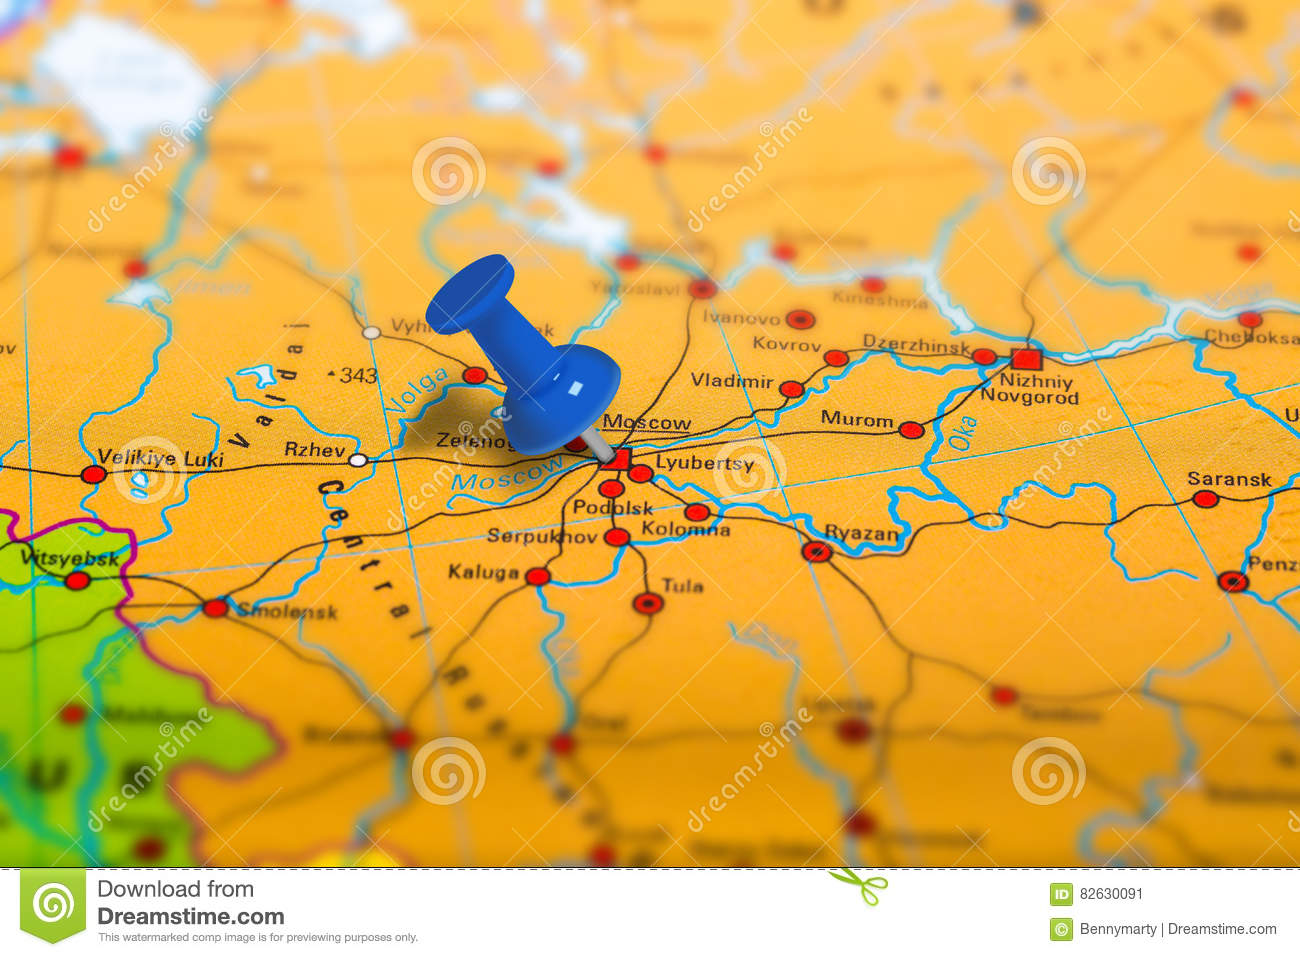 Moscow Russia Map Stock Image Image Of Destination Business 82630091